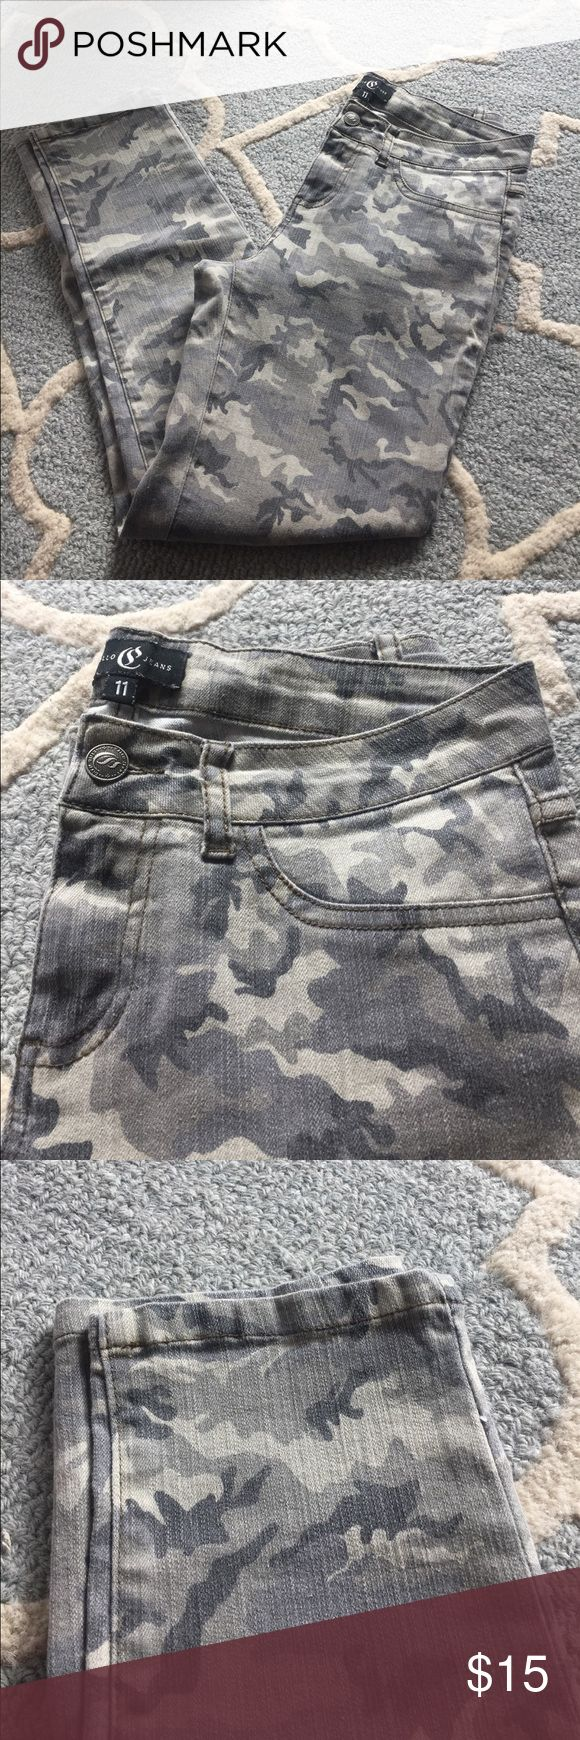 Army print ankle jeans Army print. Ankle length. Excellent condition. Cello Jeans Jeans Ankle & Cropped